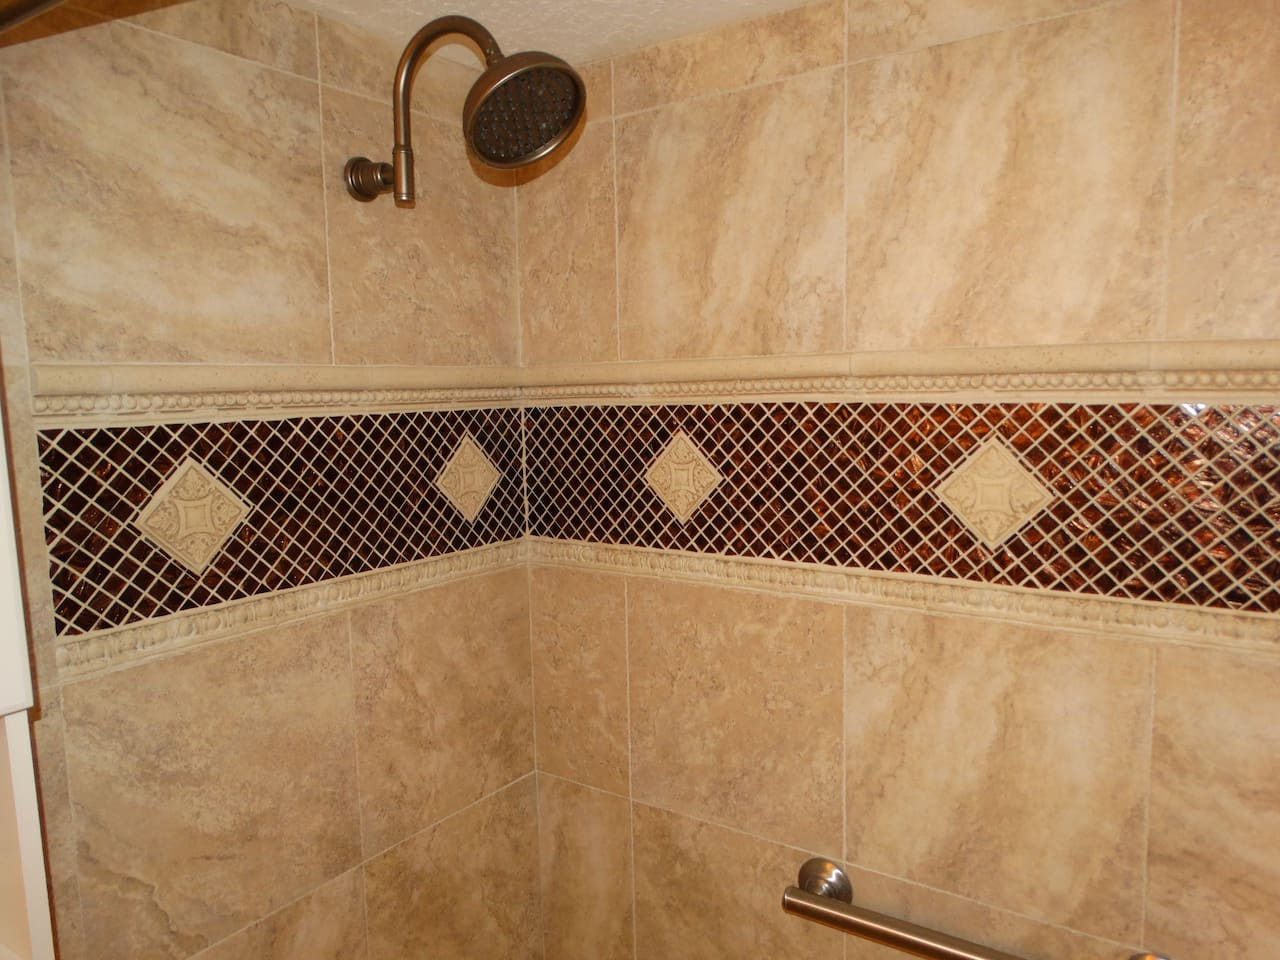 Look at the Tile Work and fixtures!